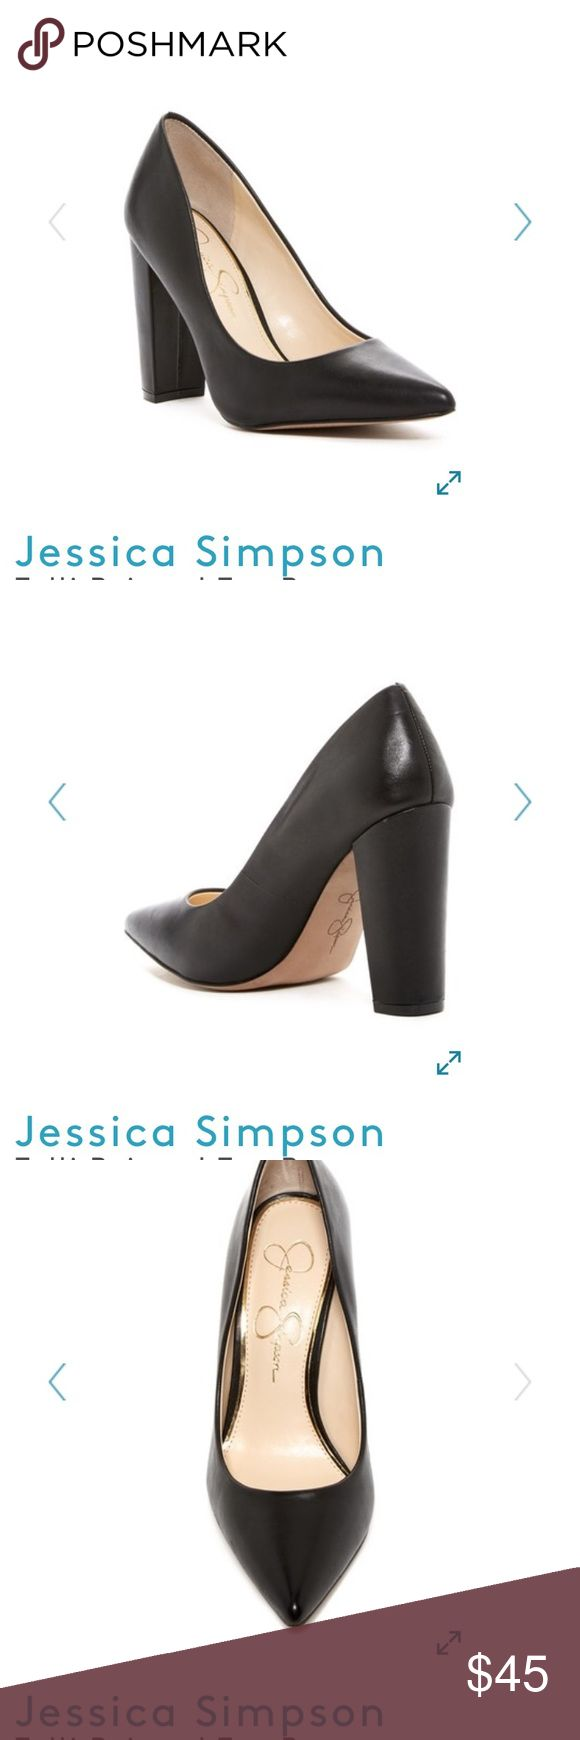 Jessica Simpson tolli black leather block heels Pointed toe heel. Worn once. Orig owner bought from Nord rack Jessica Simpson Shoes Heels